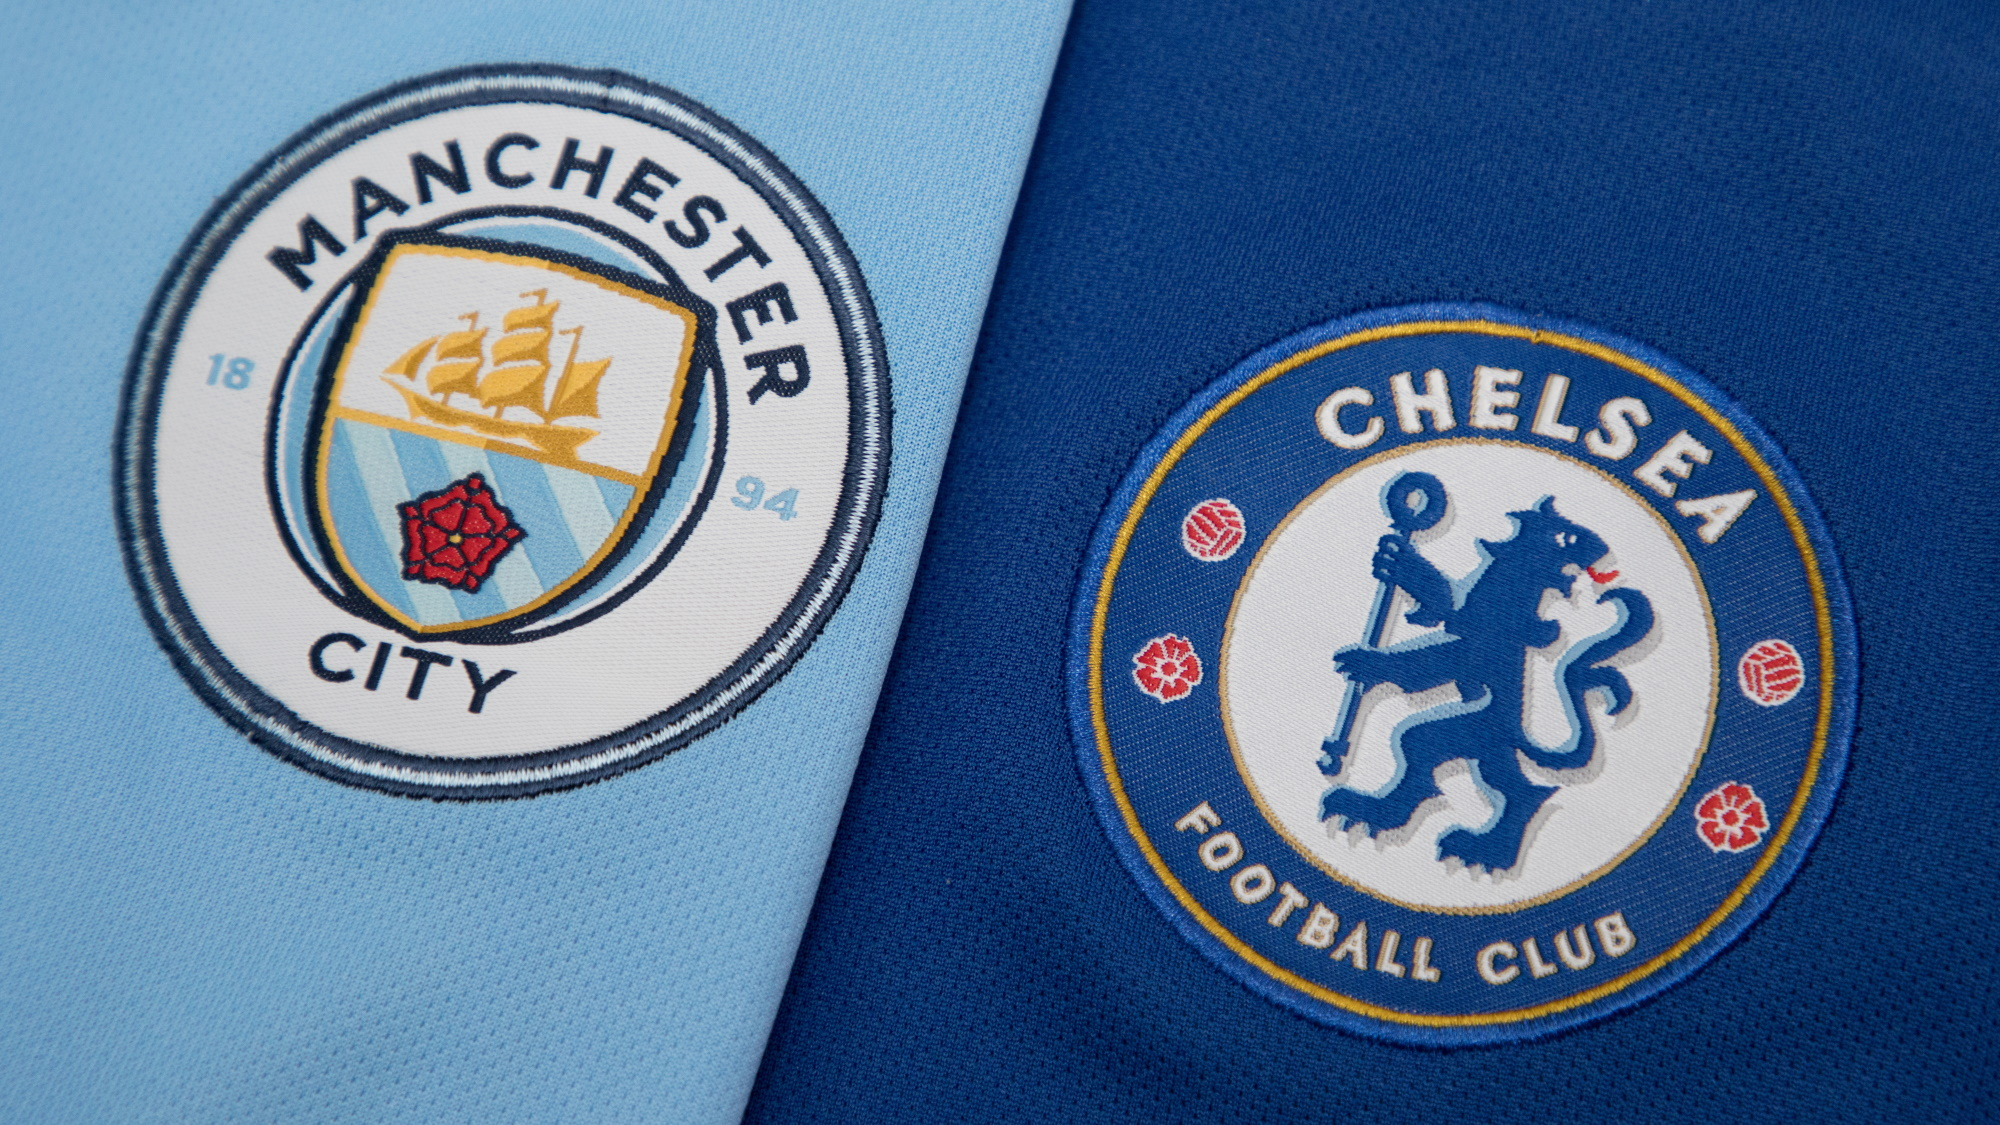 Champions League Final Live Stream Watch Manchester City Vs Chelsea For Free In The Us Gamesradar